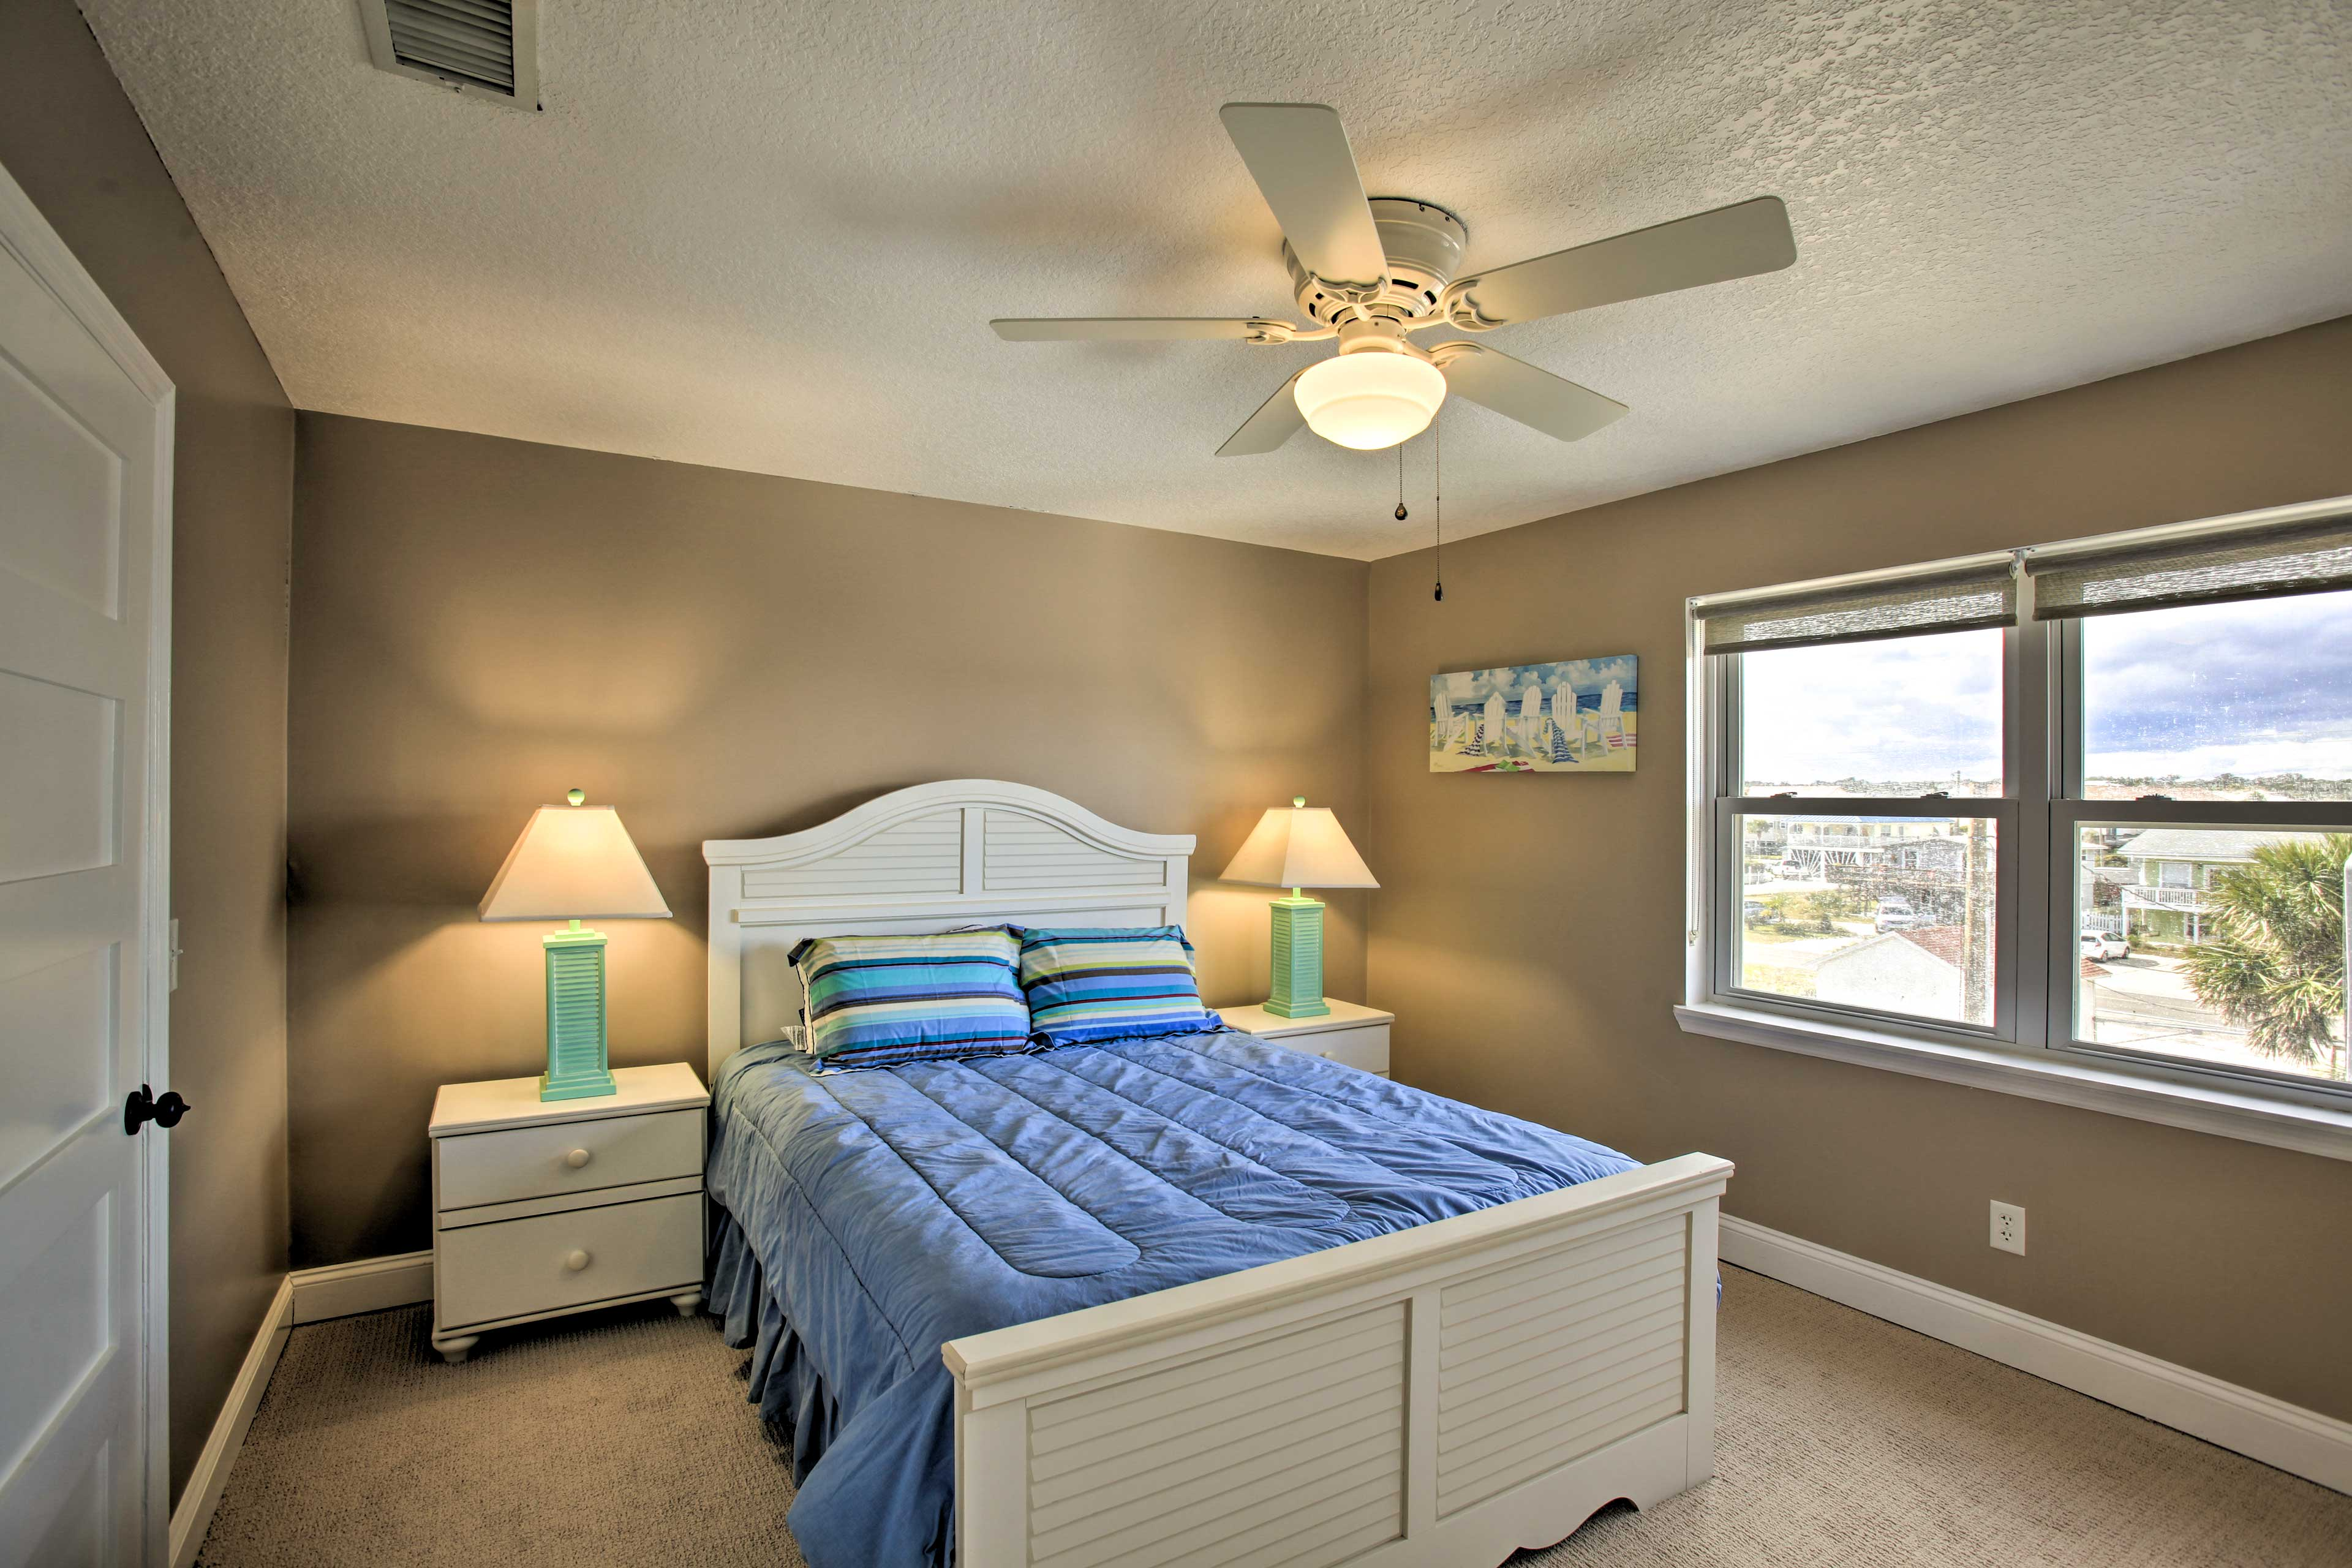 The second bedroom also offers a queen bed.